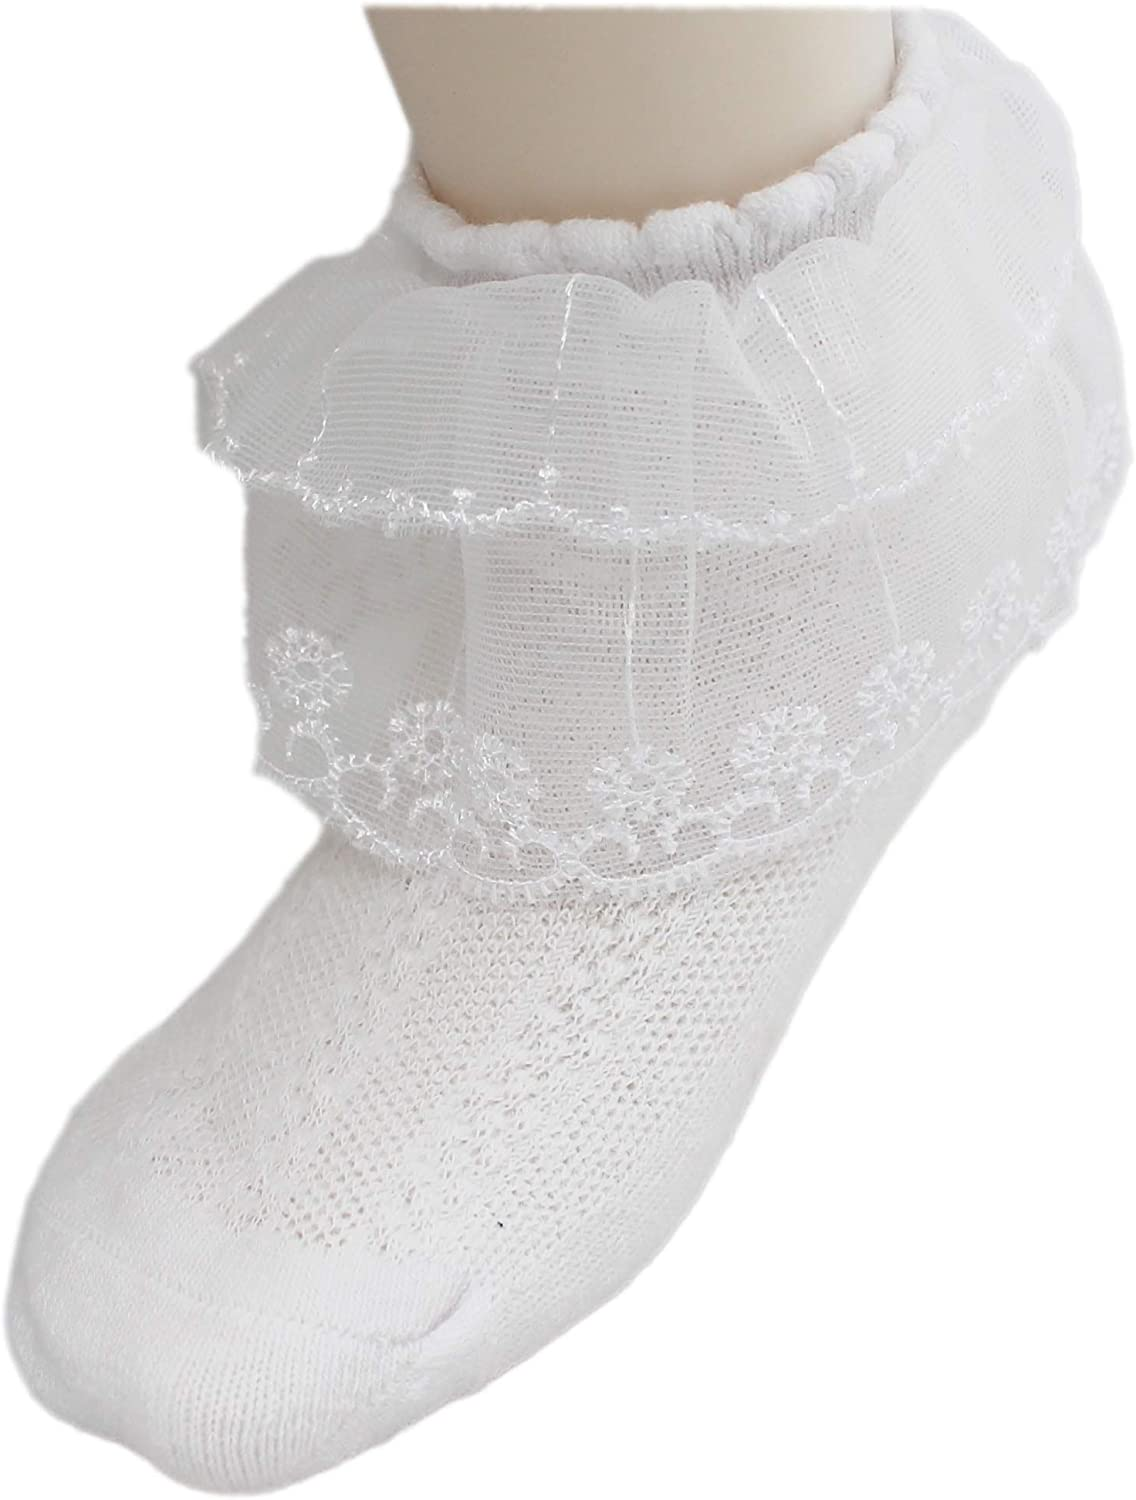 2 Pairs Girls 2-tier Lace Frilly Ruffle Ankle White Summer School Socks Age 1-10